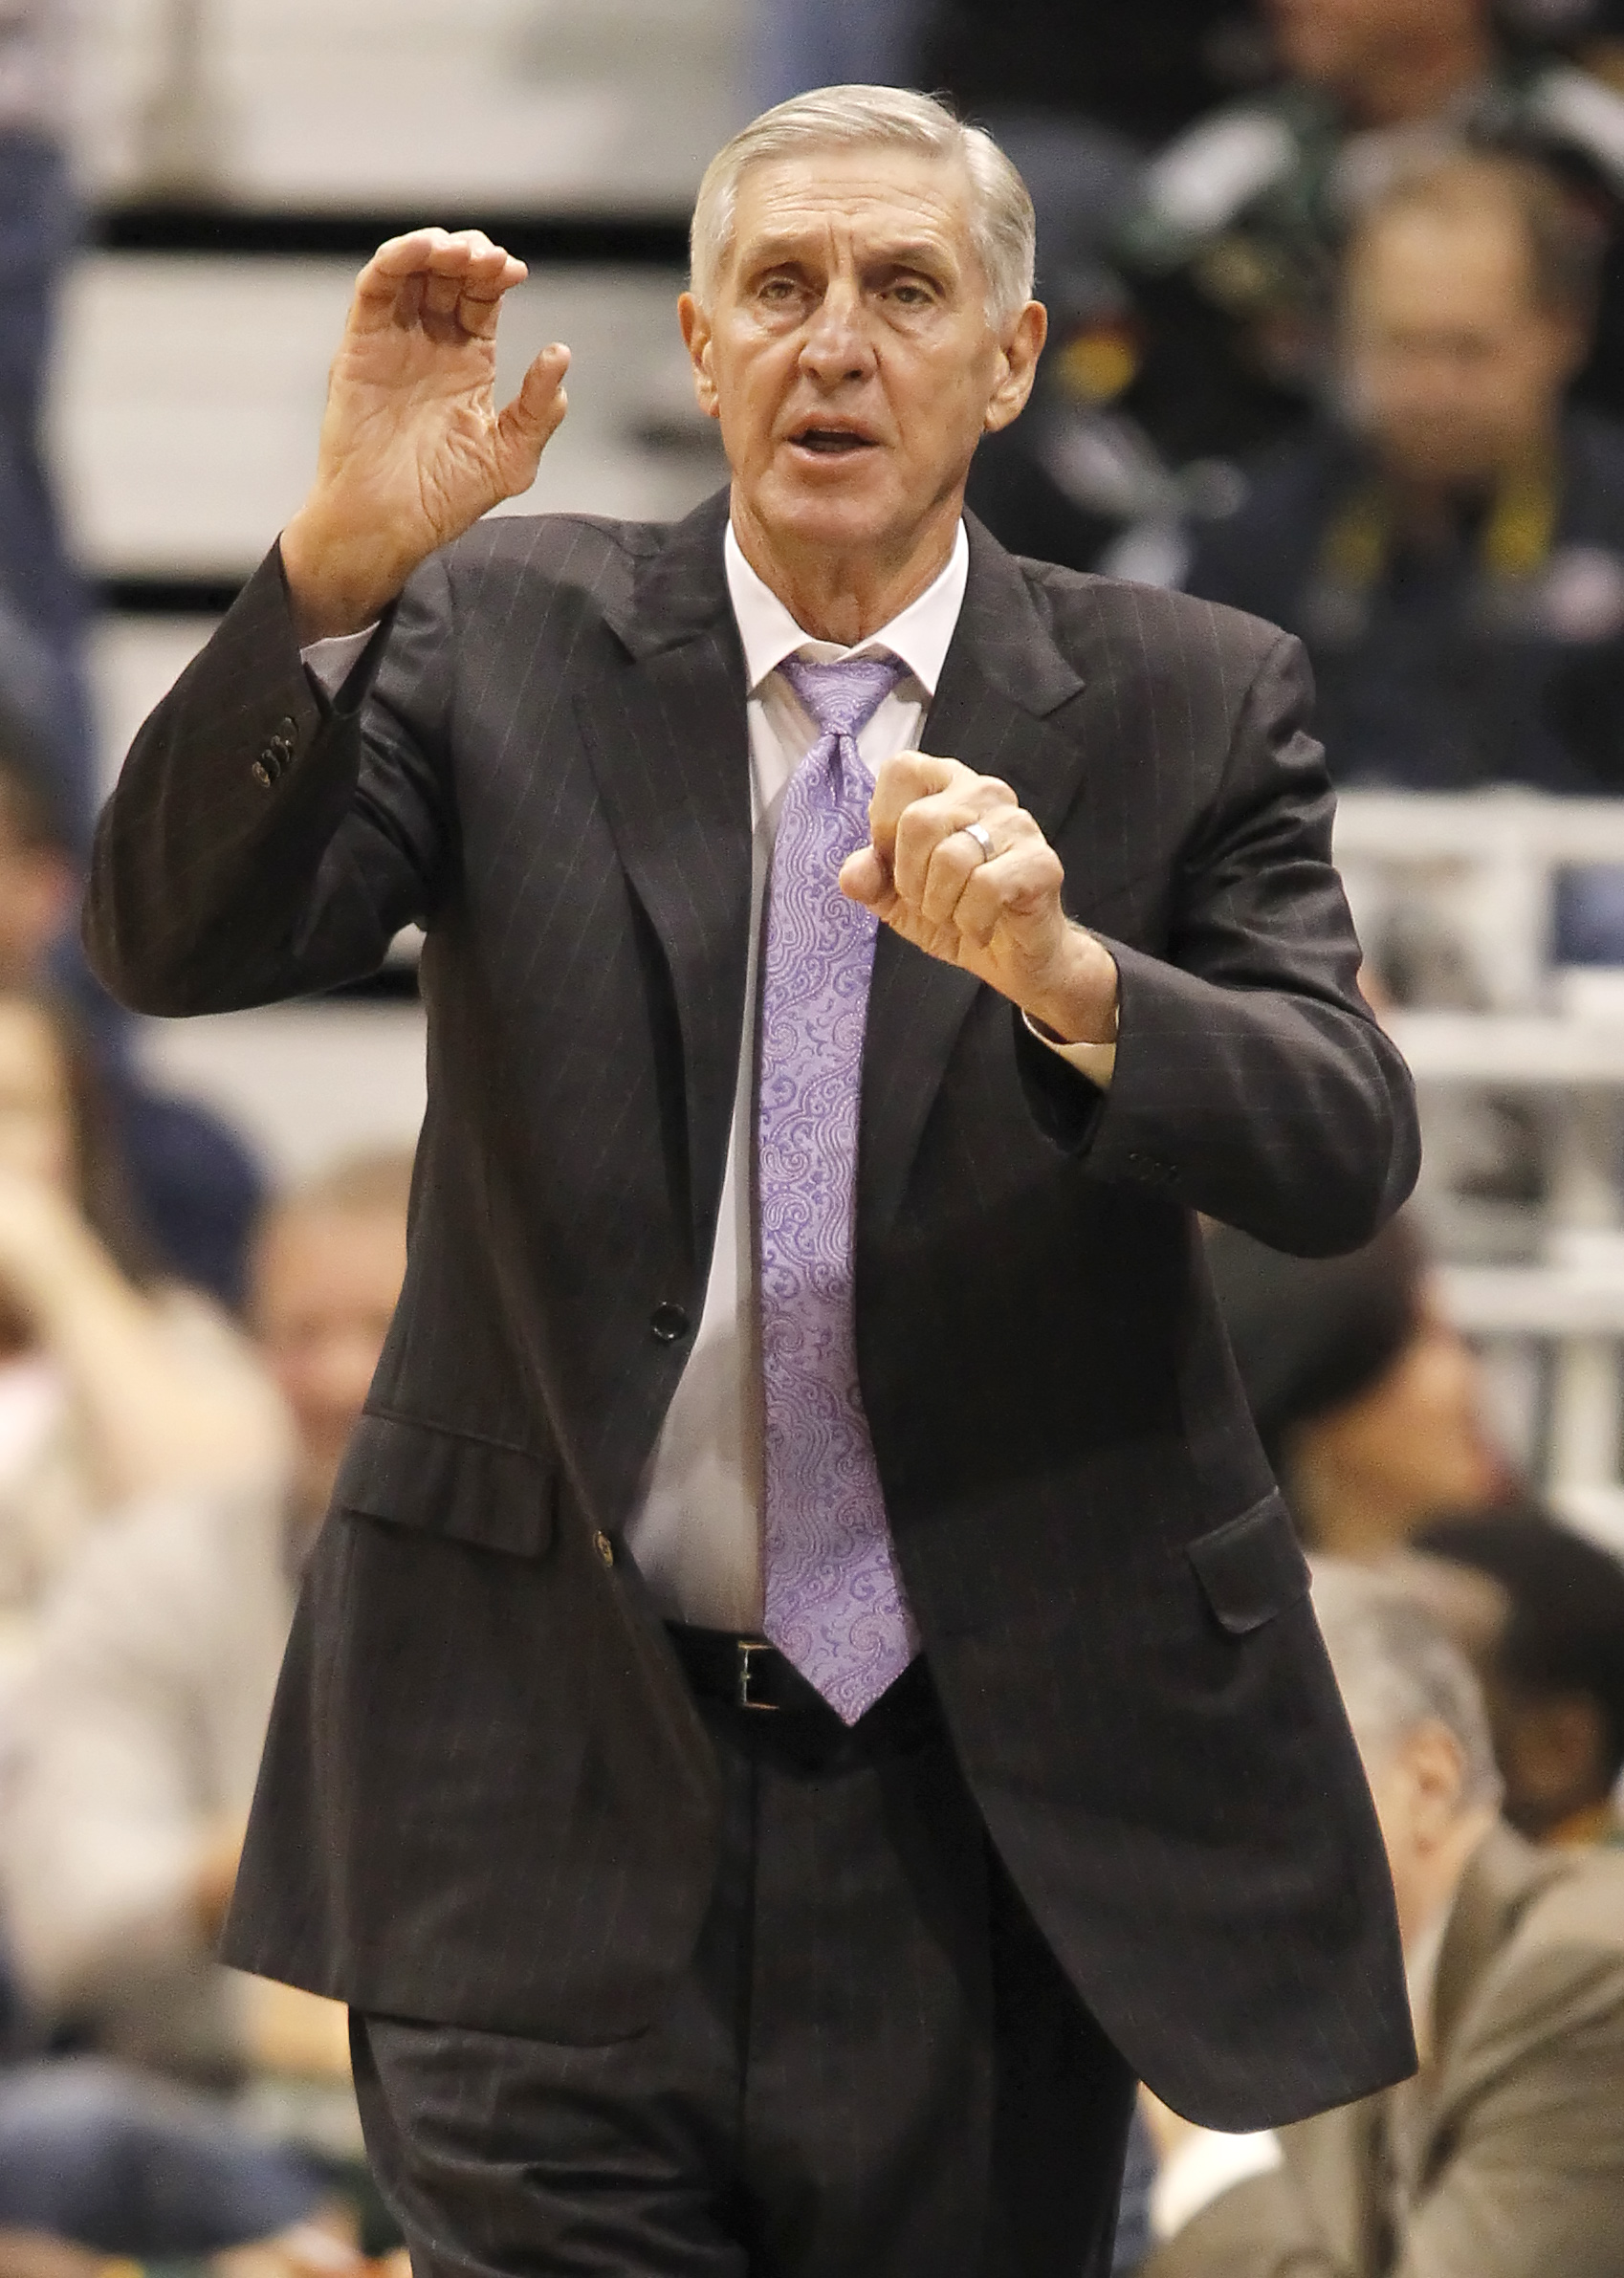 SALT LAKE CITY, UT - DECEMBER 8: Head coach of the Utah Jazz Jerry Sloan calls a play dueing a game against the Miami Heat during the first half of an NBA game December 8, 2010 at Energy Solutions Arena in Salt Lake City, Utah. The Heat beat the Jazz 111-